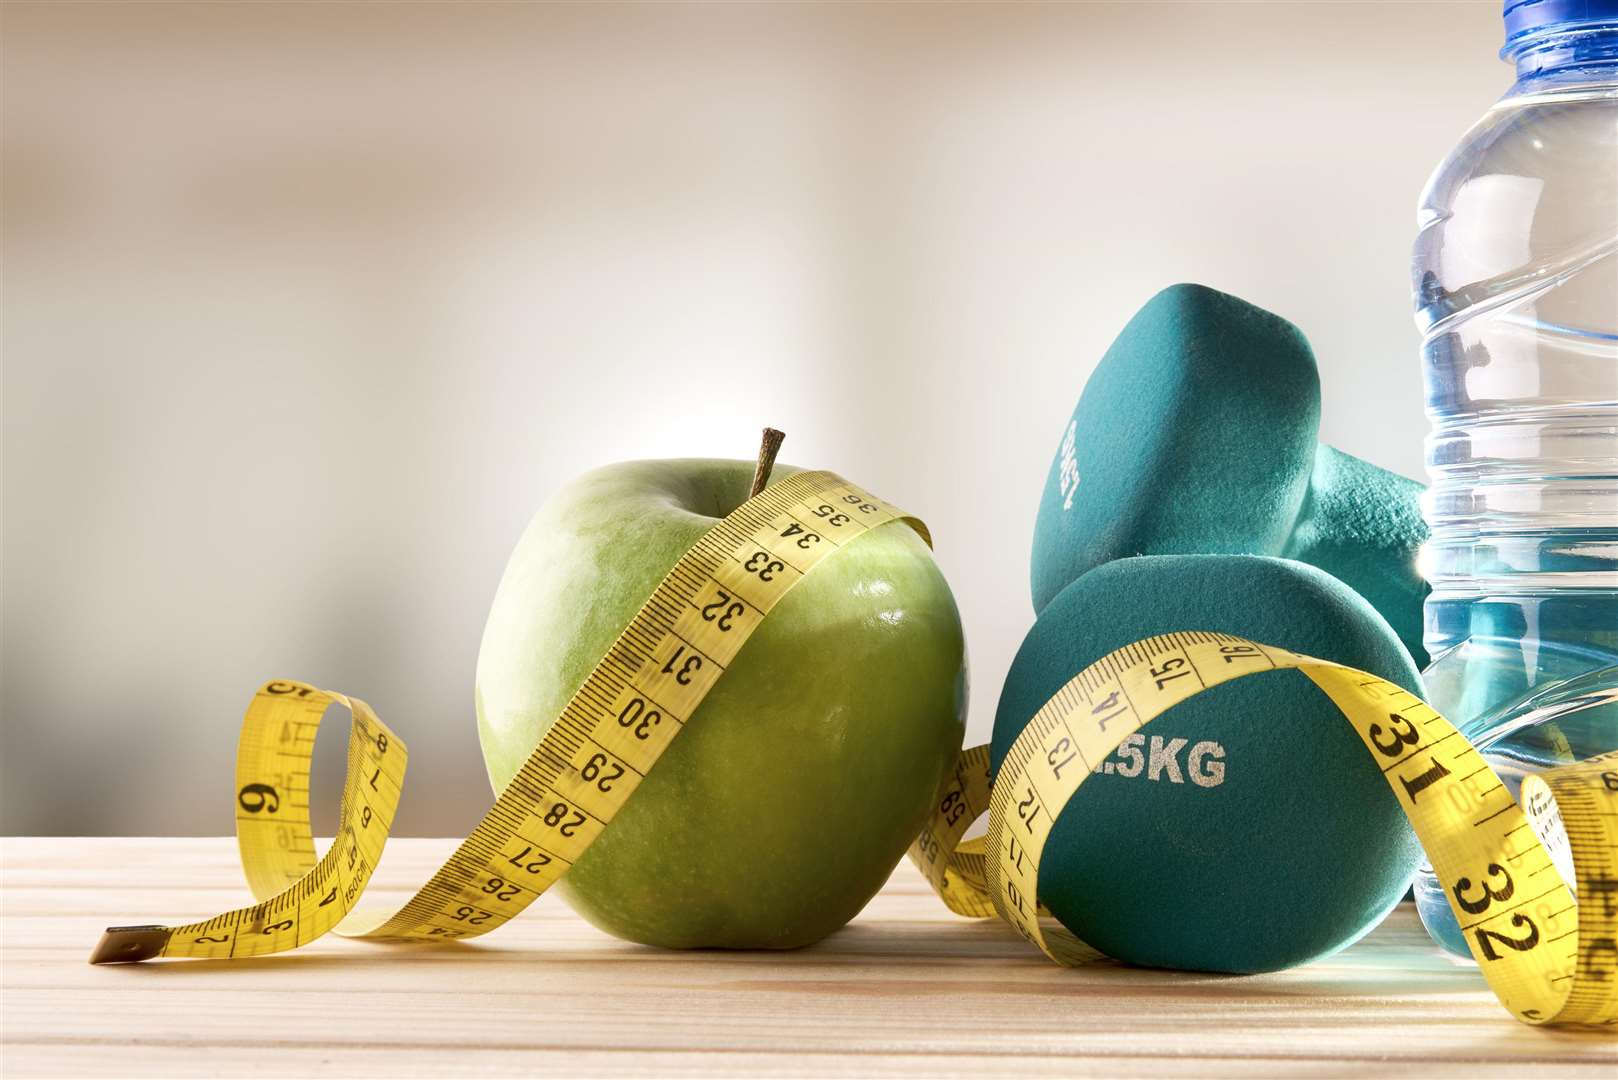 There's no point dropping weight quickly if your diet is seriously lacking in nutrients